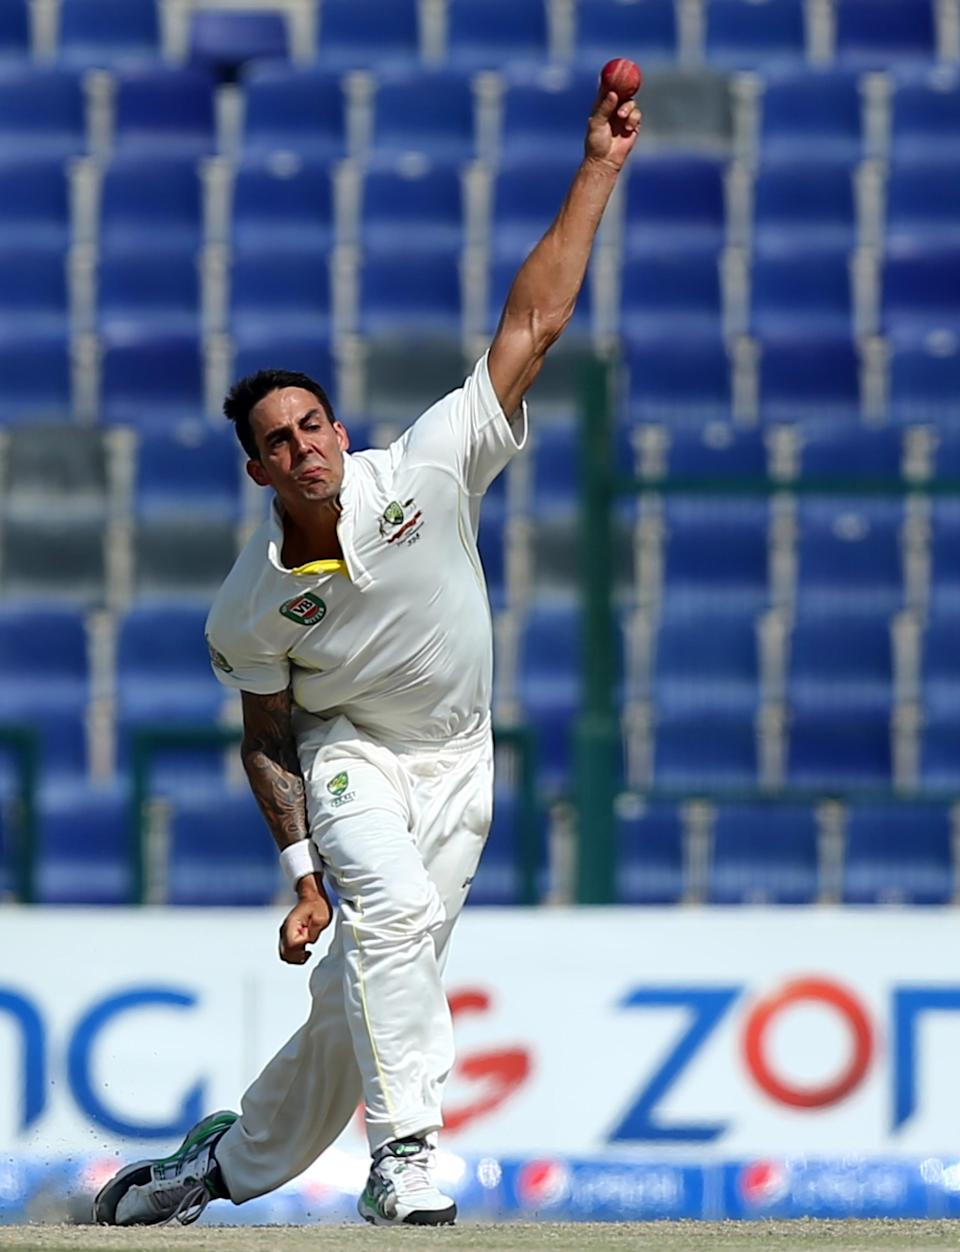 Mitchell Johnson bowls during the fourth day of the second test between Pakistan and Australia in Abu Dhabi on November 2, 2014 (AFP Photo/Marwan Naamani)